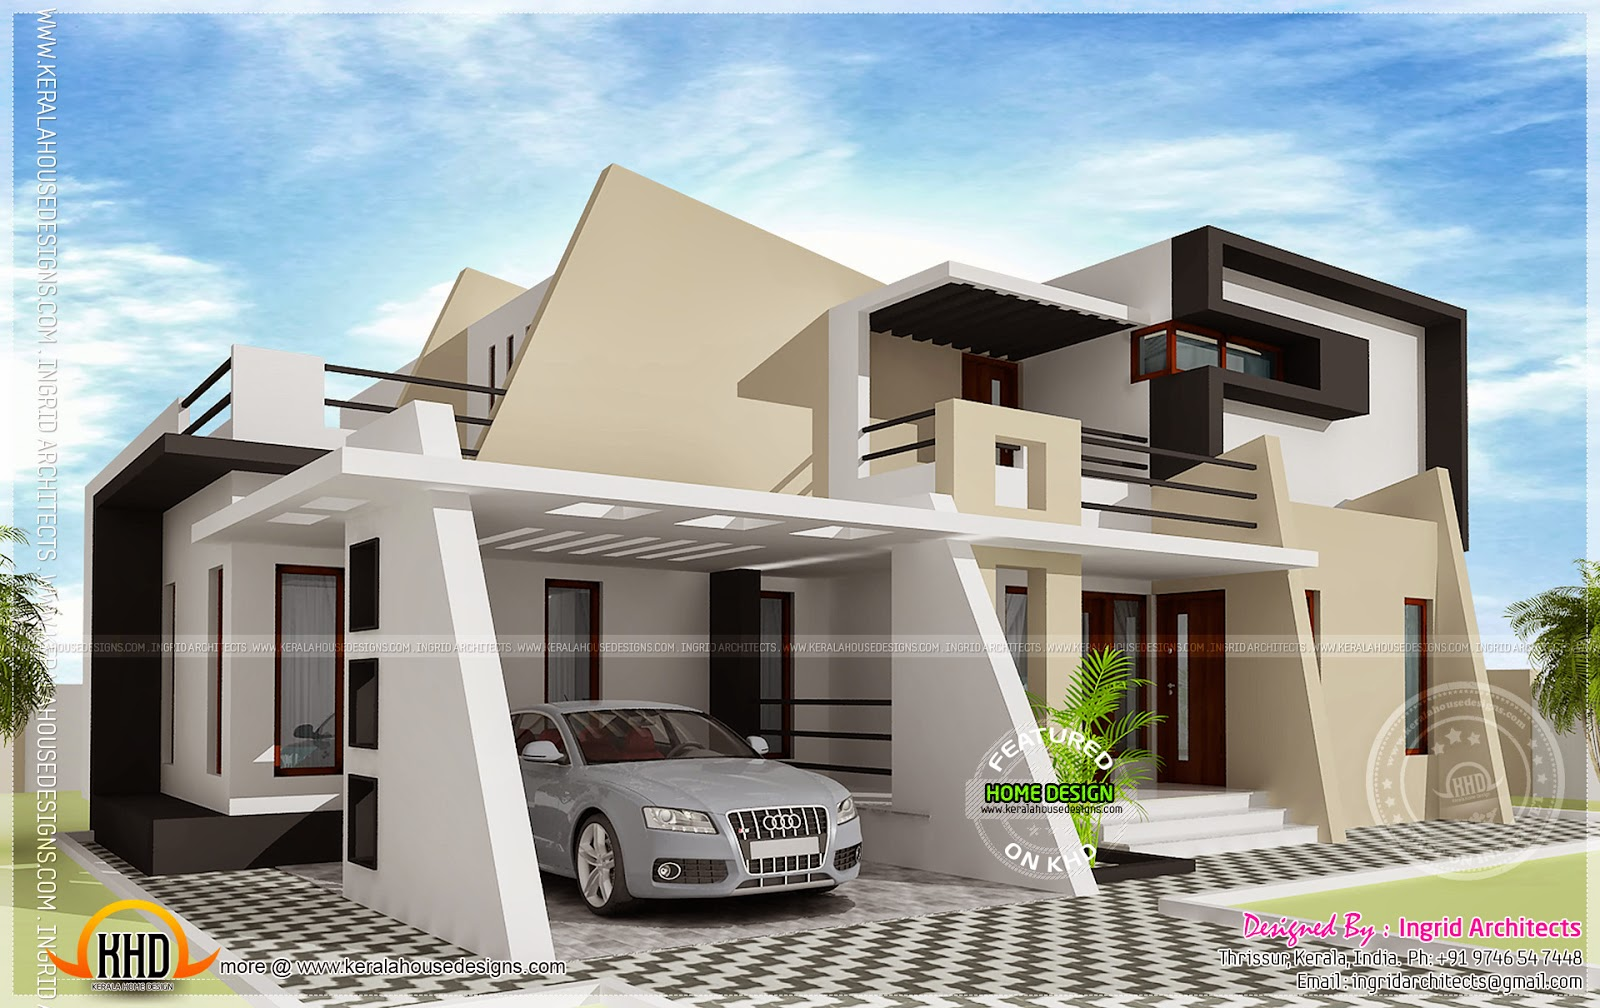 March 2014 kerala home design and floor plans - Contemporary house designs ...